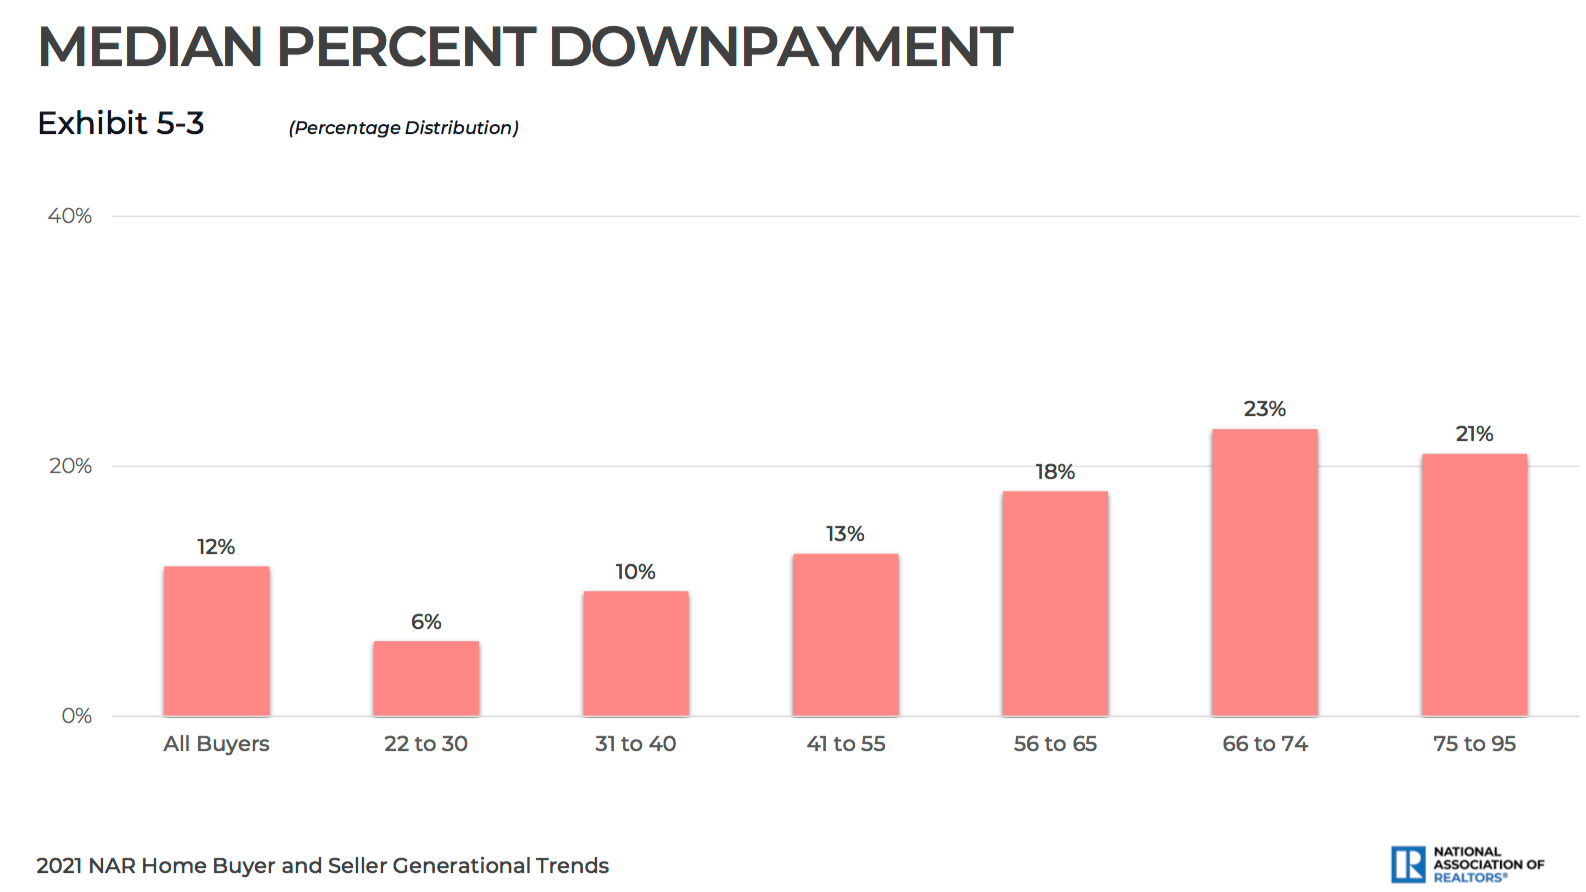 Median percent downpayment by age of buyers.